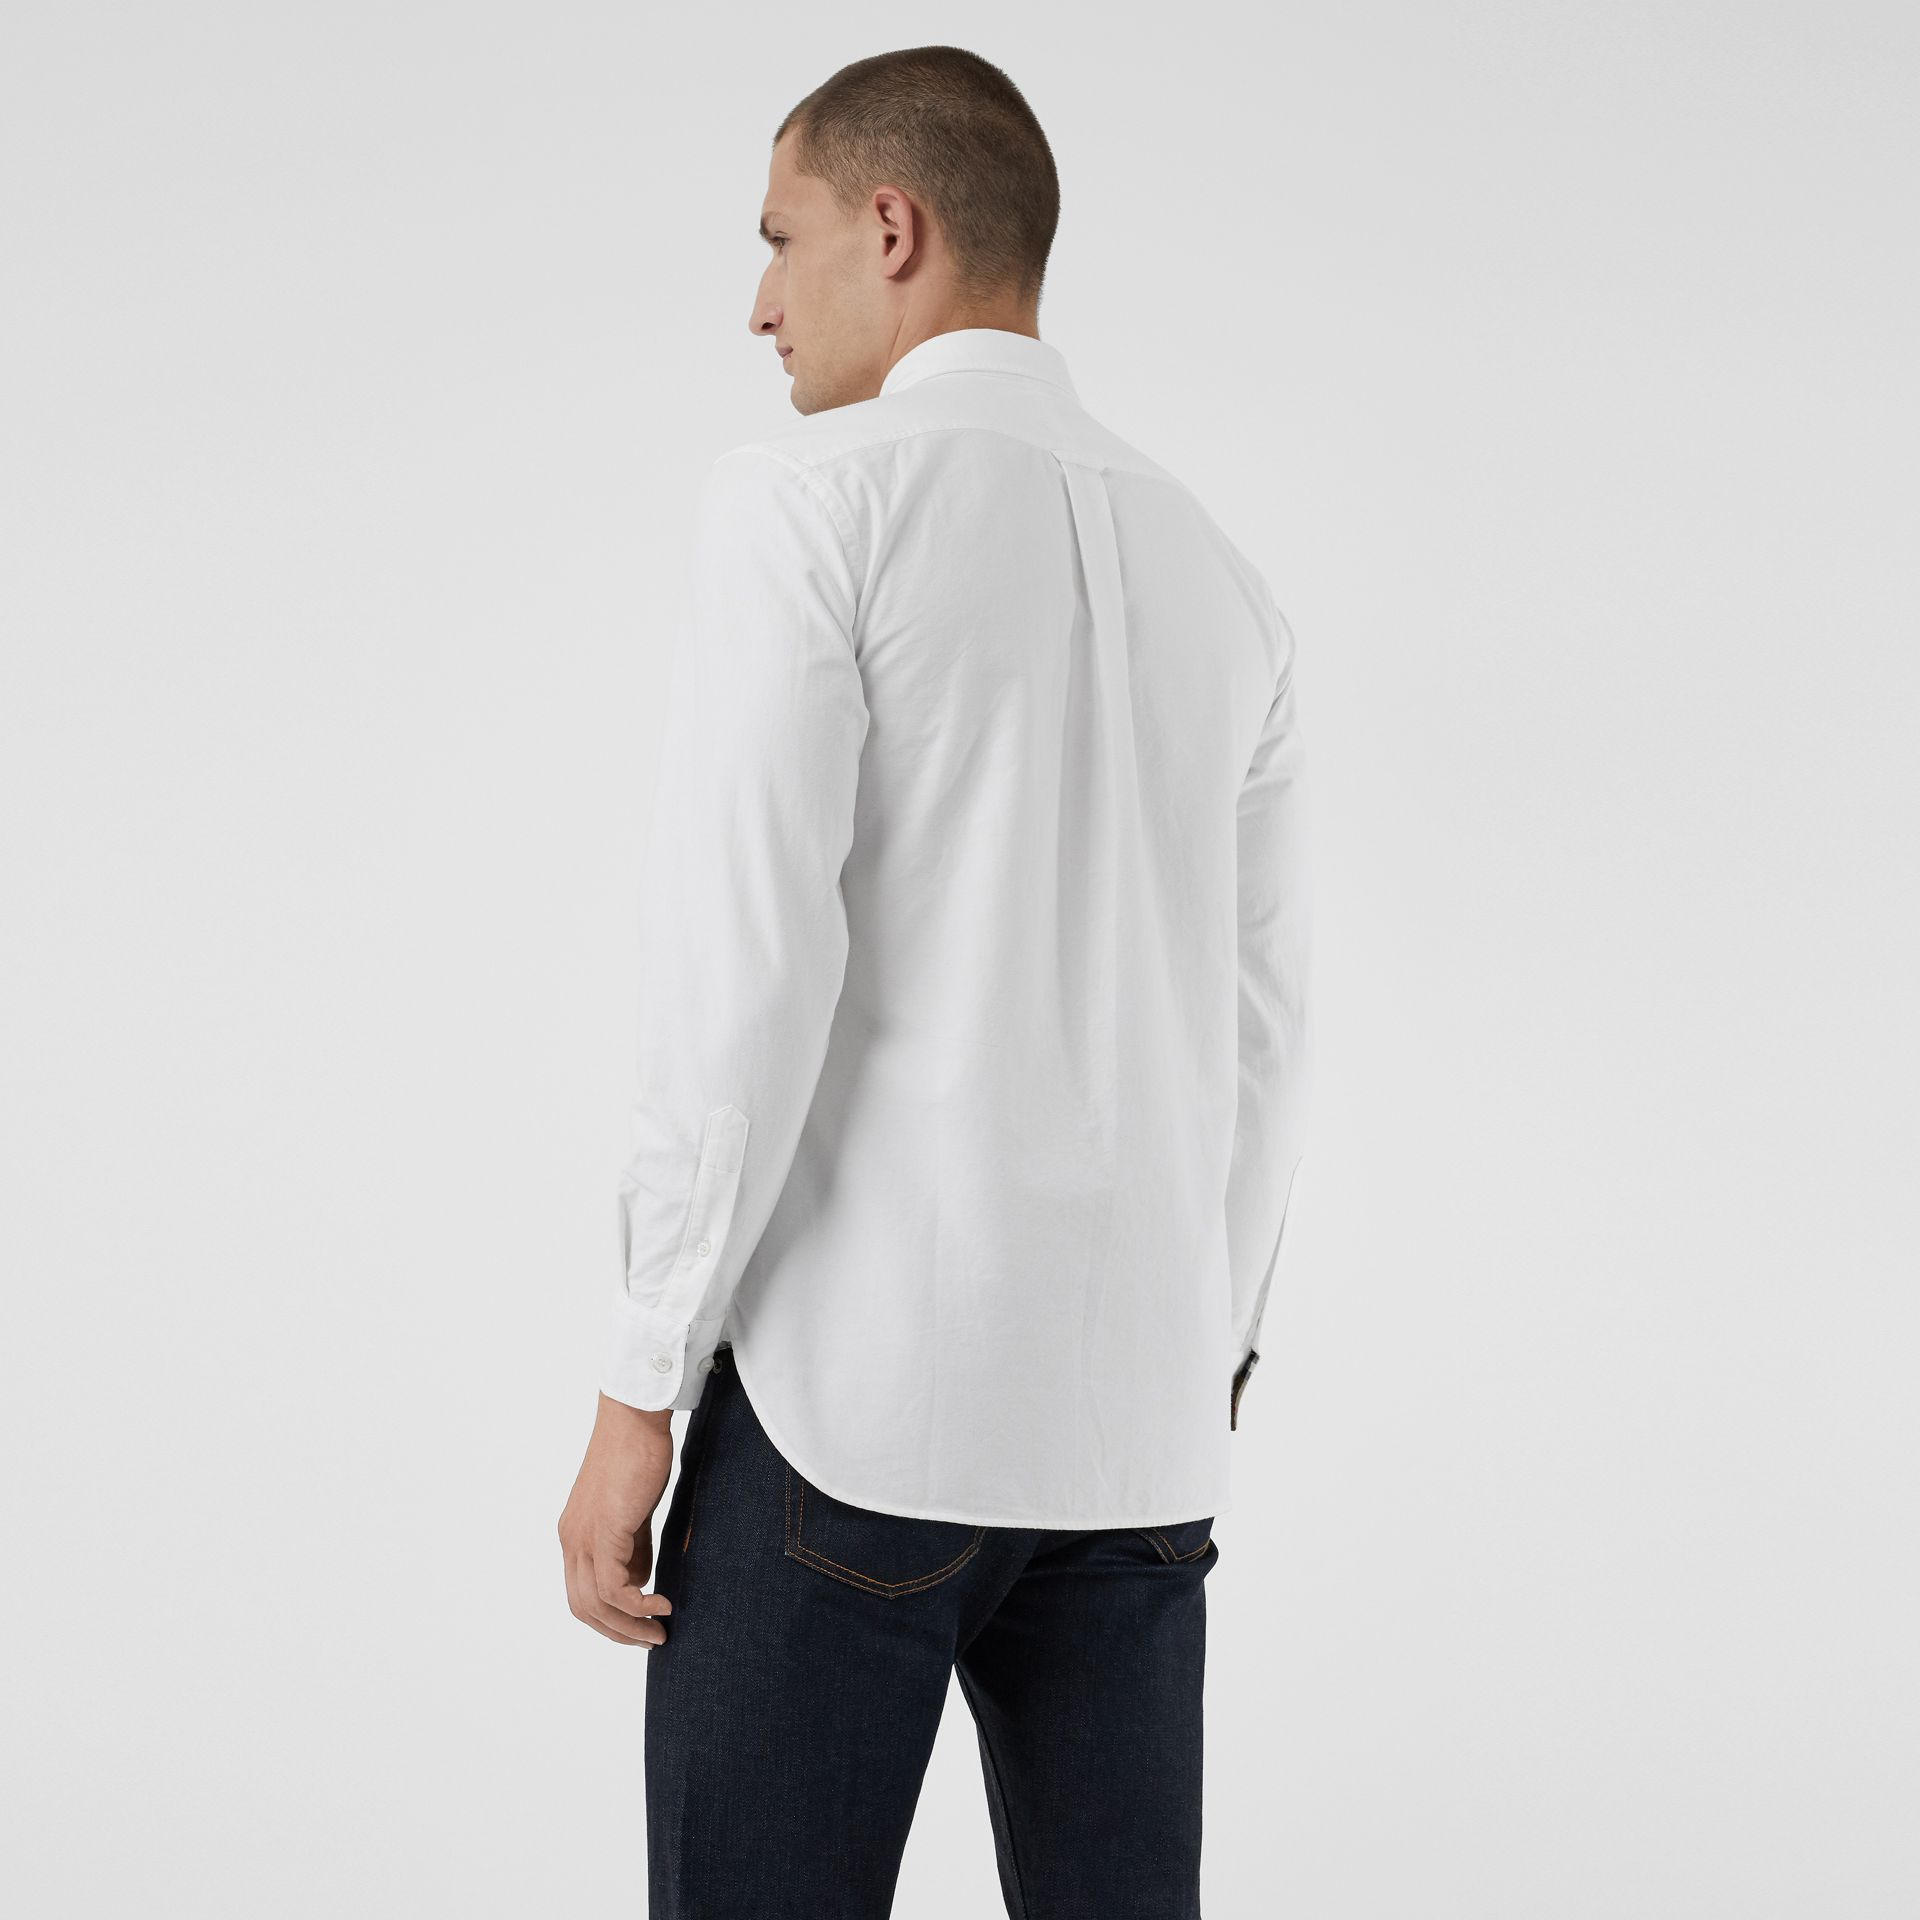 Embroidered Archive Logo Cotton Oxford Shirt in White - Men | Burberry United States - gallery image 2